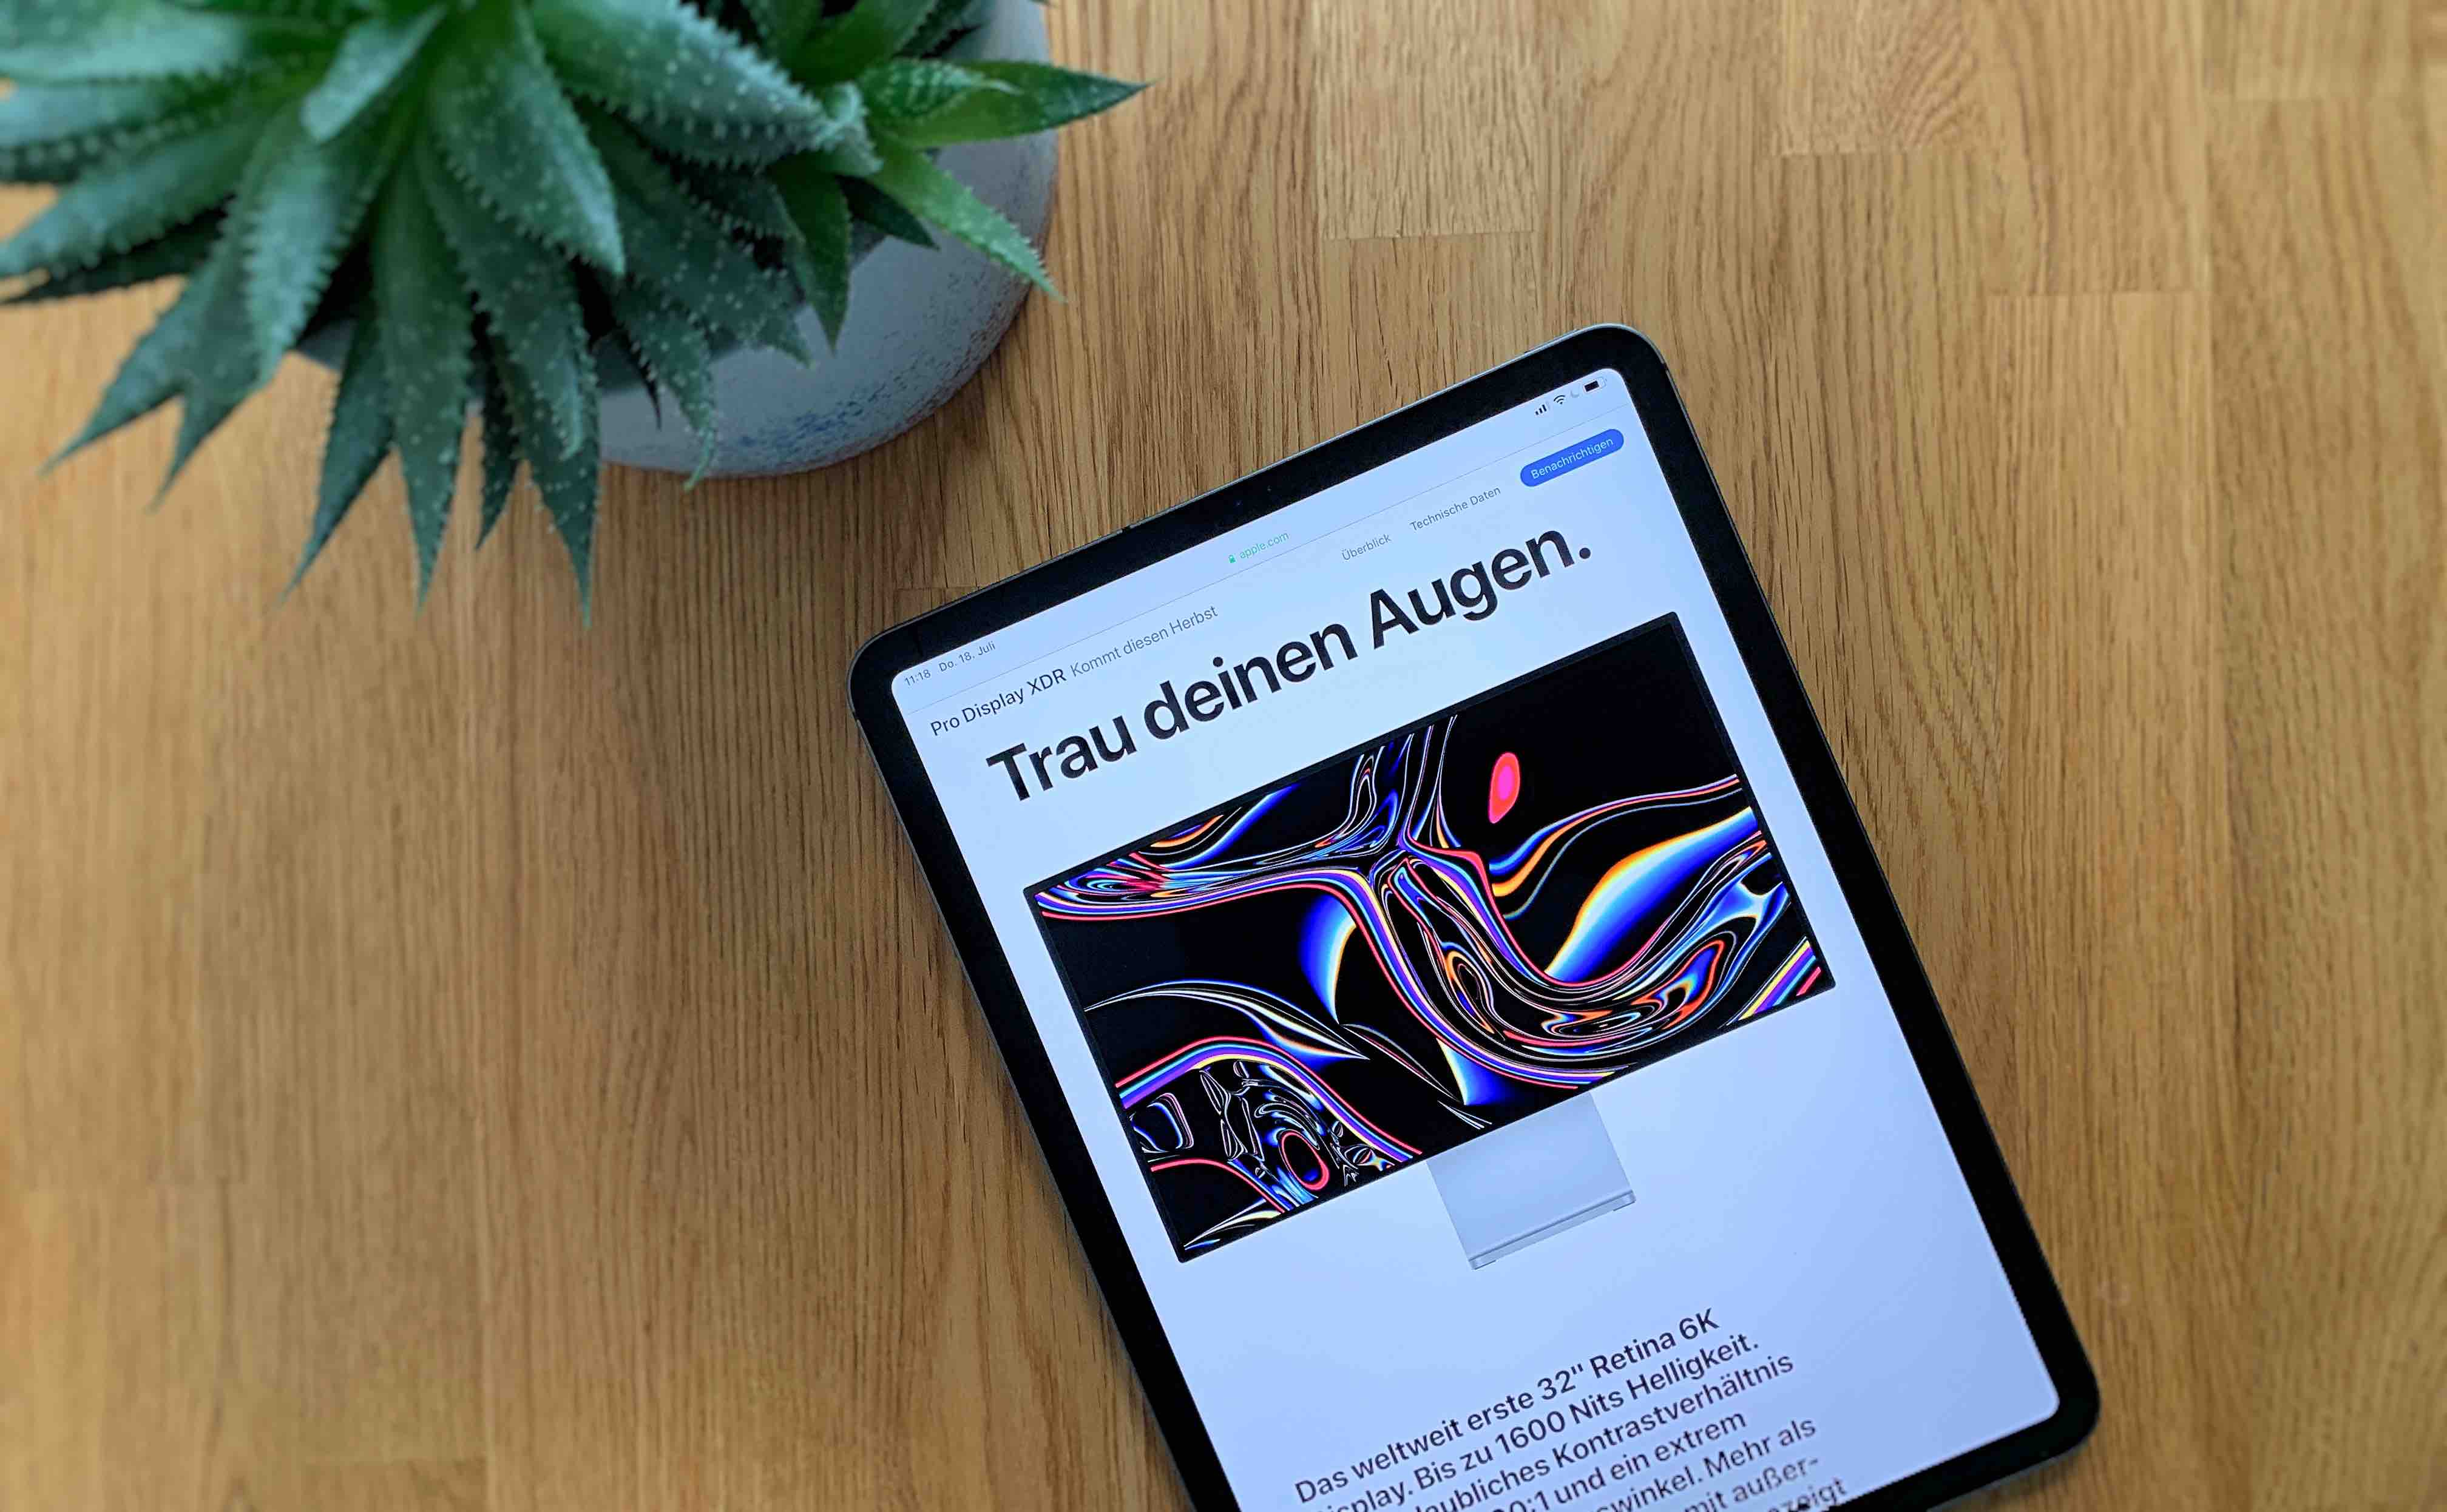 Das-Problem-mit-dem-Apple-Pro-Display-XDR-Kolumne-Artikelbild Das Problem mit dem Apple Pro Display XDR